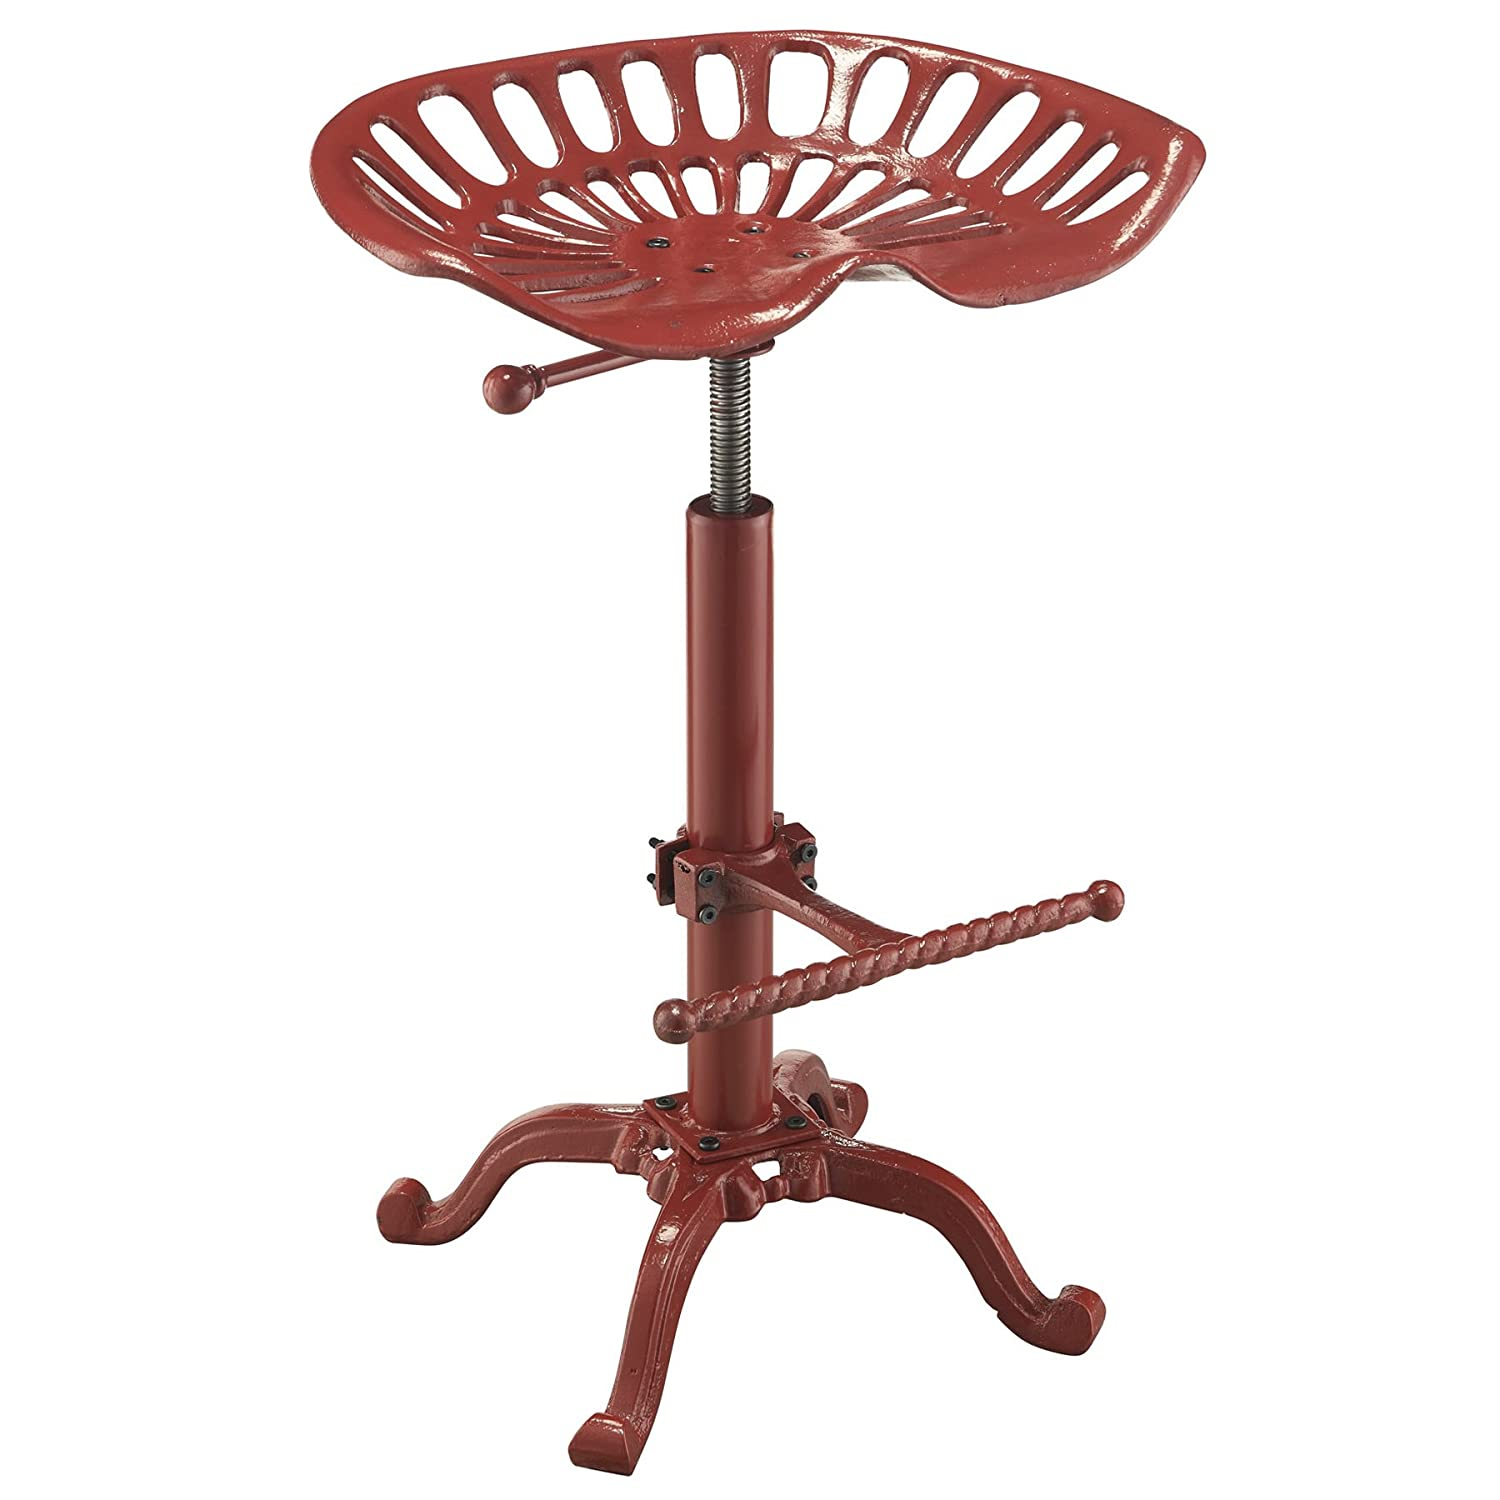 Amazon.com Carolina Chair and Table Adjustable Colton Tractor Seat Stool Red Kitchen u0026 Dining  sc 1 st  Amazon.com & Amazon.com: Carolina Chair and Table Adjustable Colton Tractor ... islam-shia.org